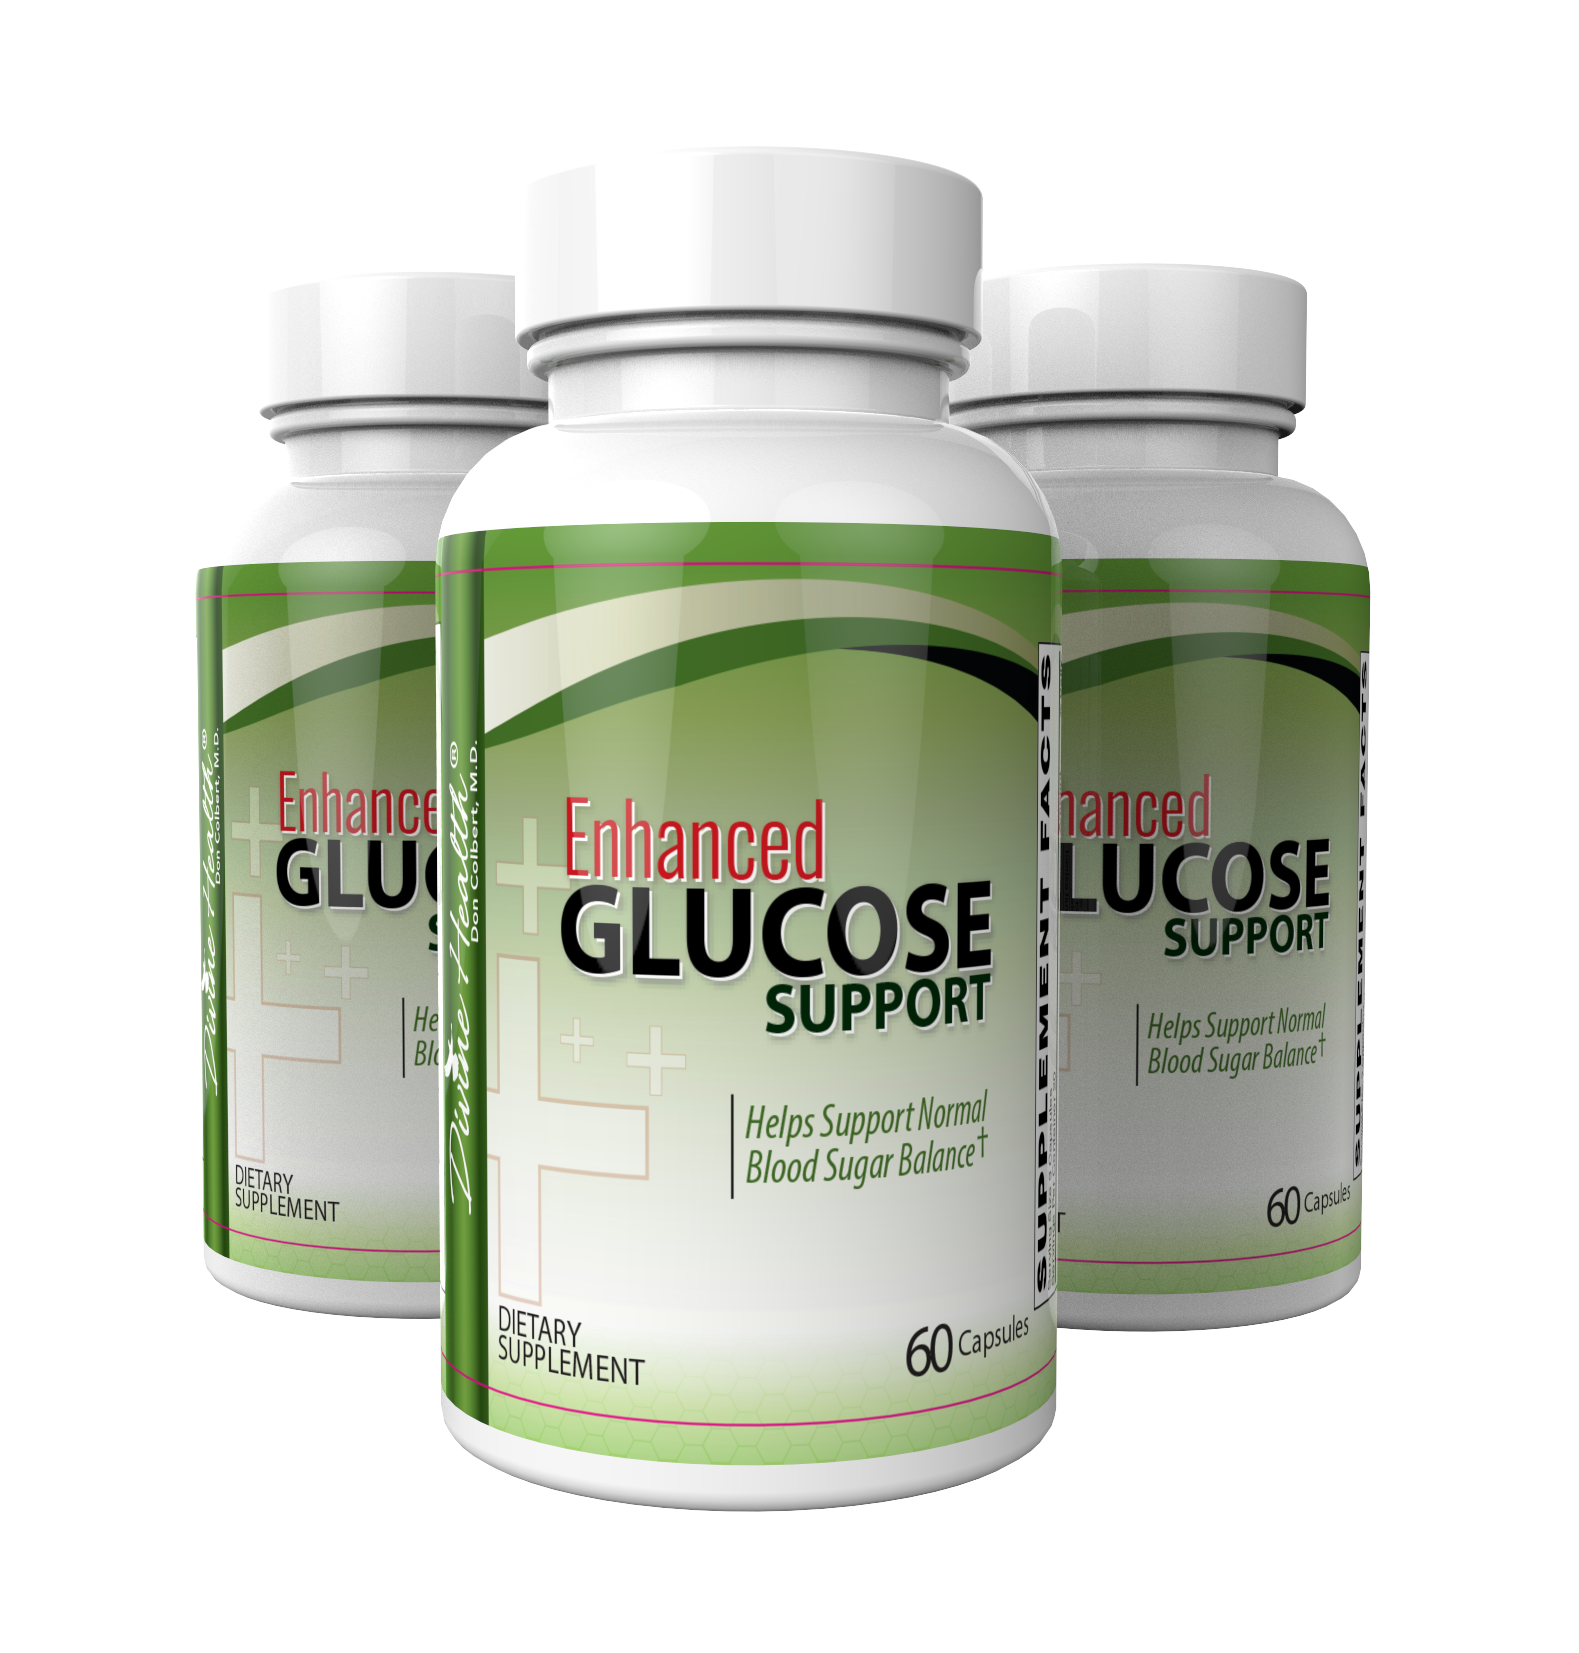 Enhanced Glucose Support (3 Bottles 60 Day Supply)